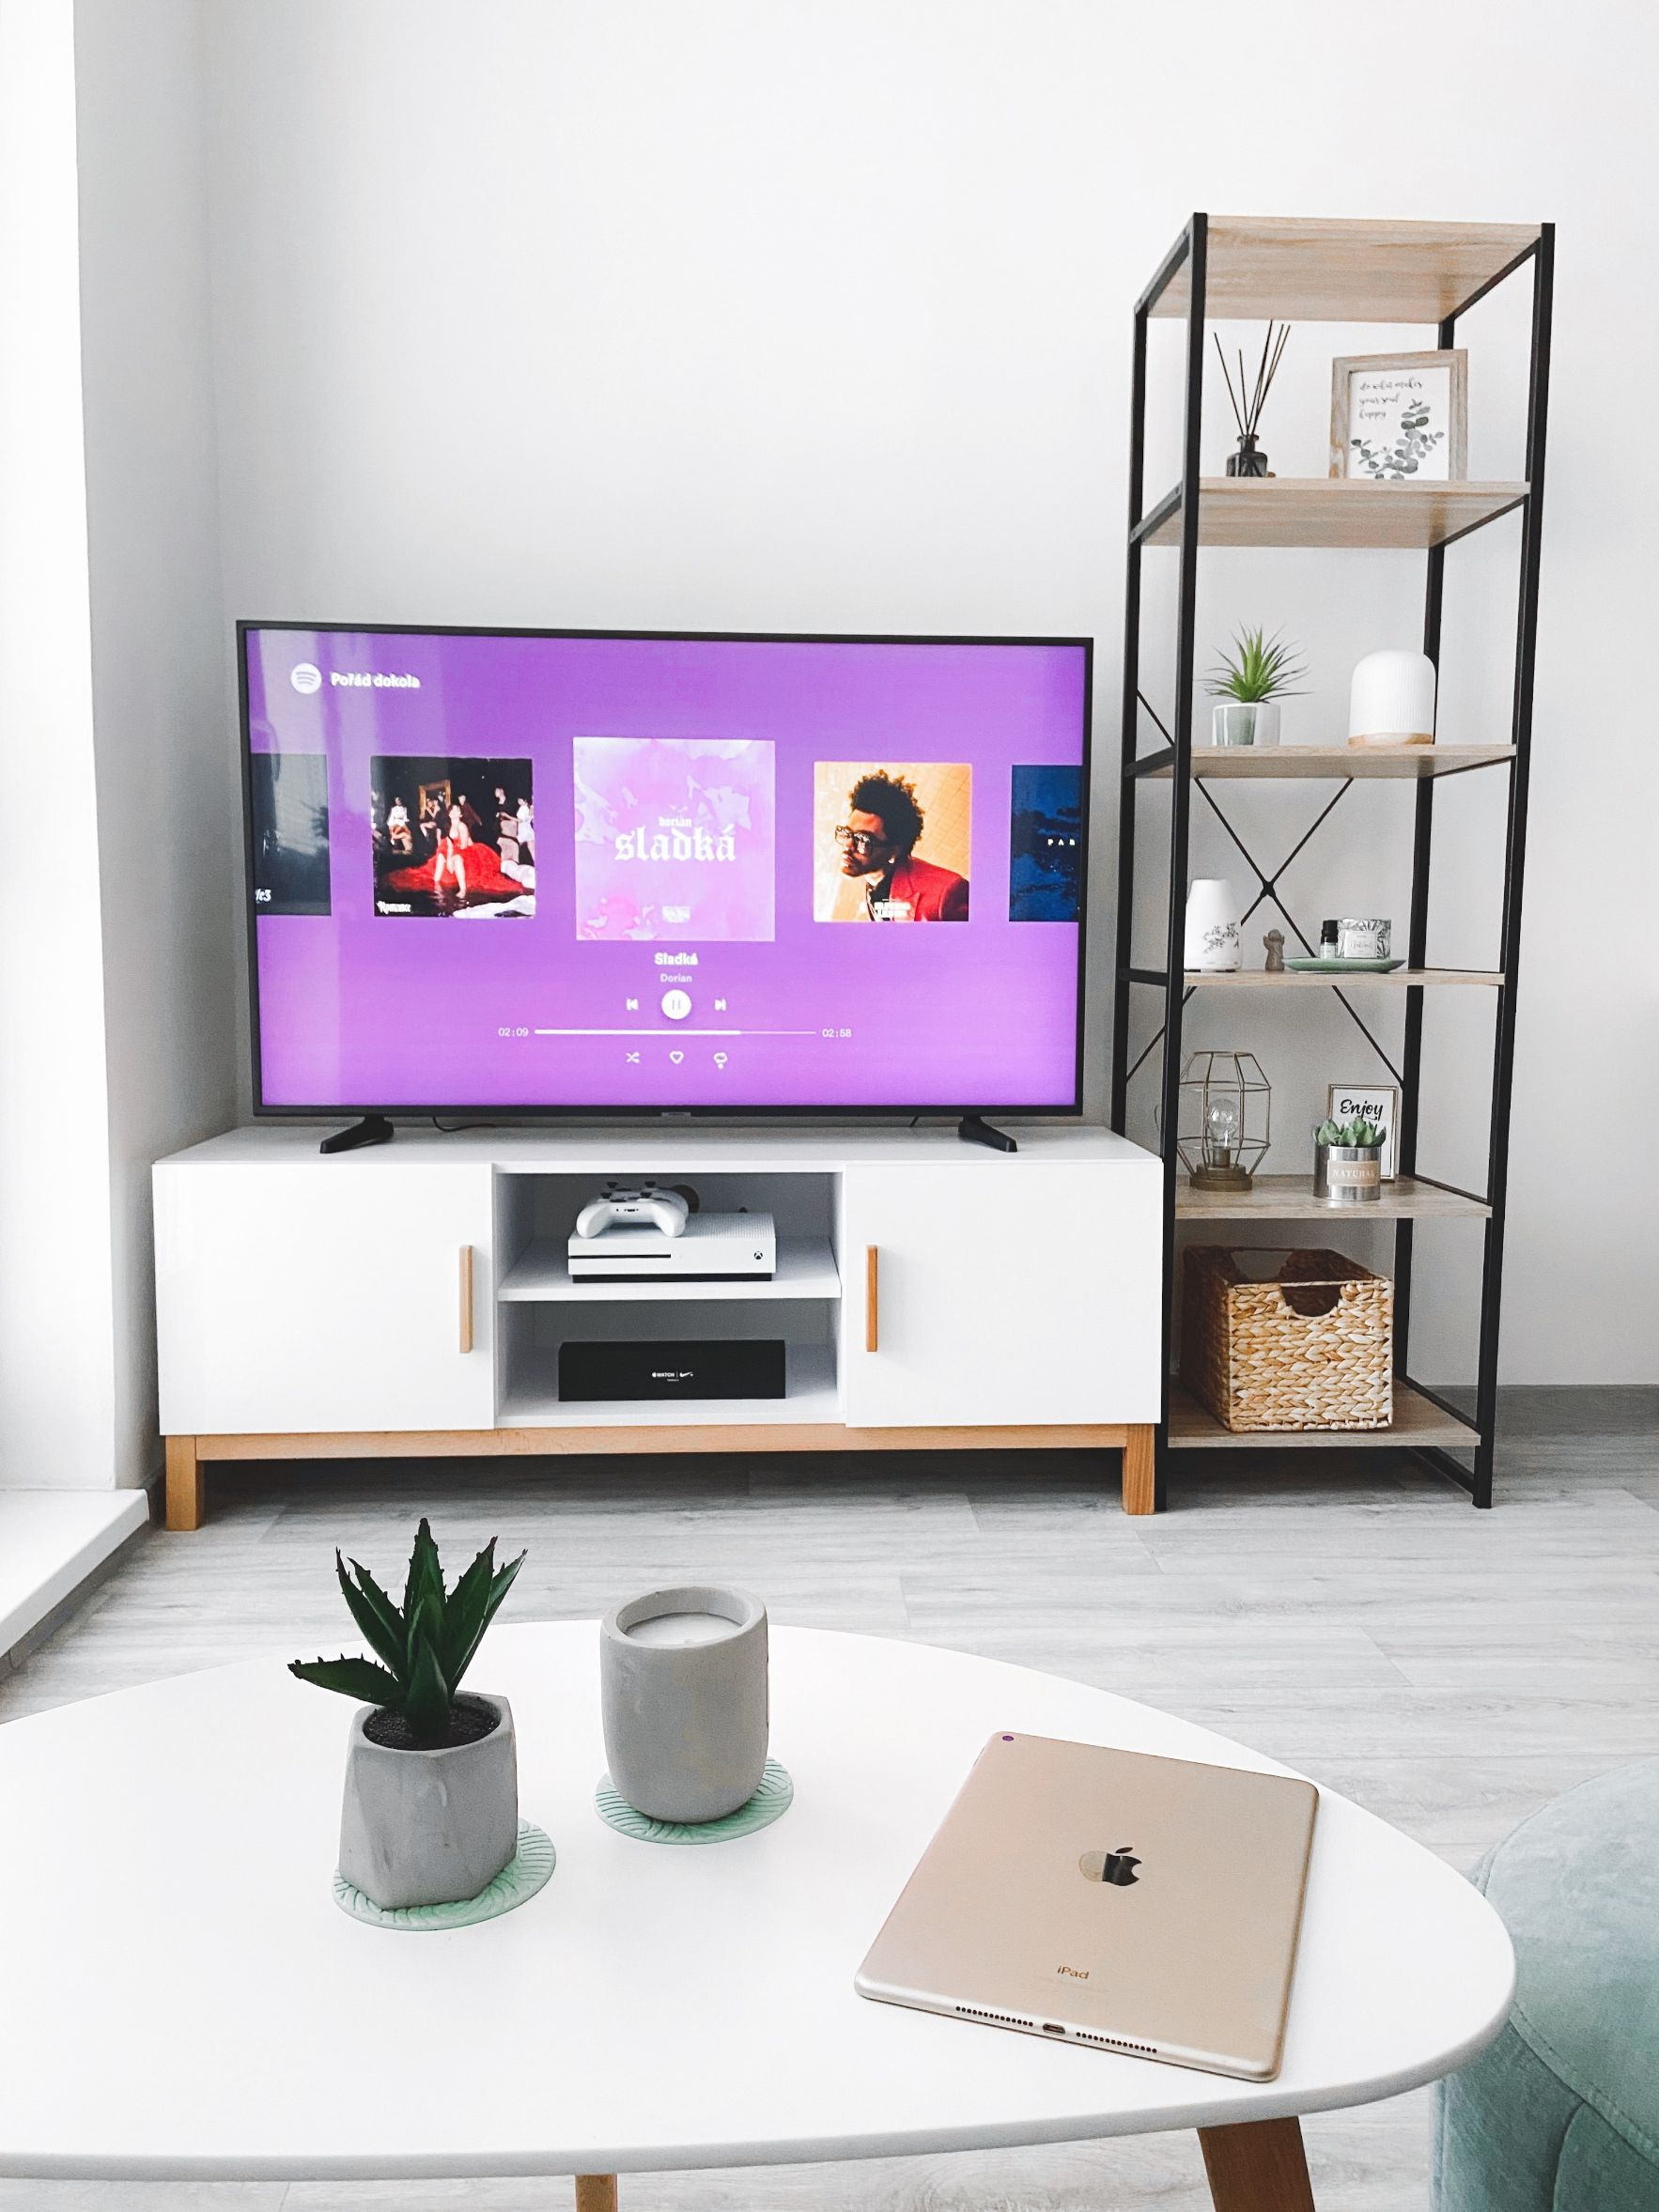 TV with netflix in a living room with modern decor